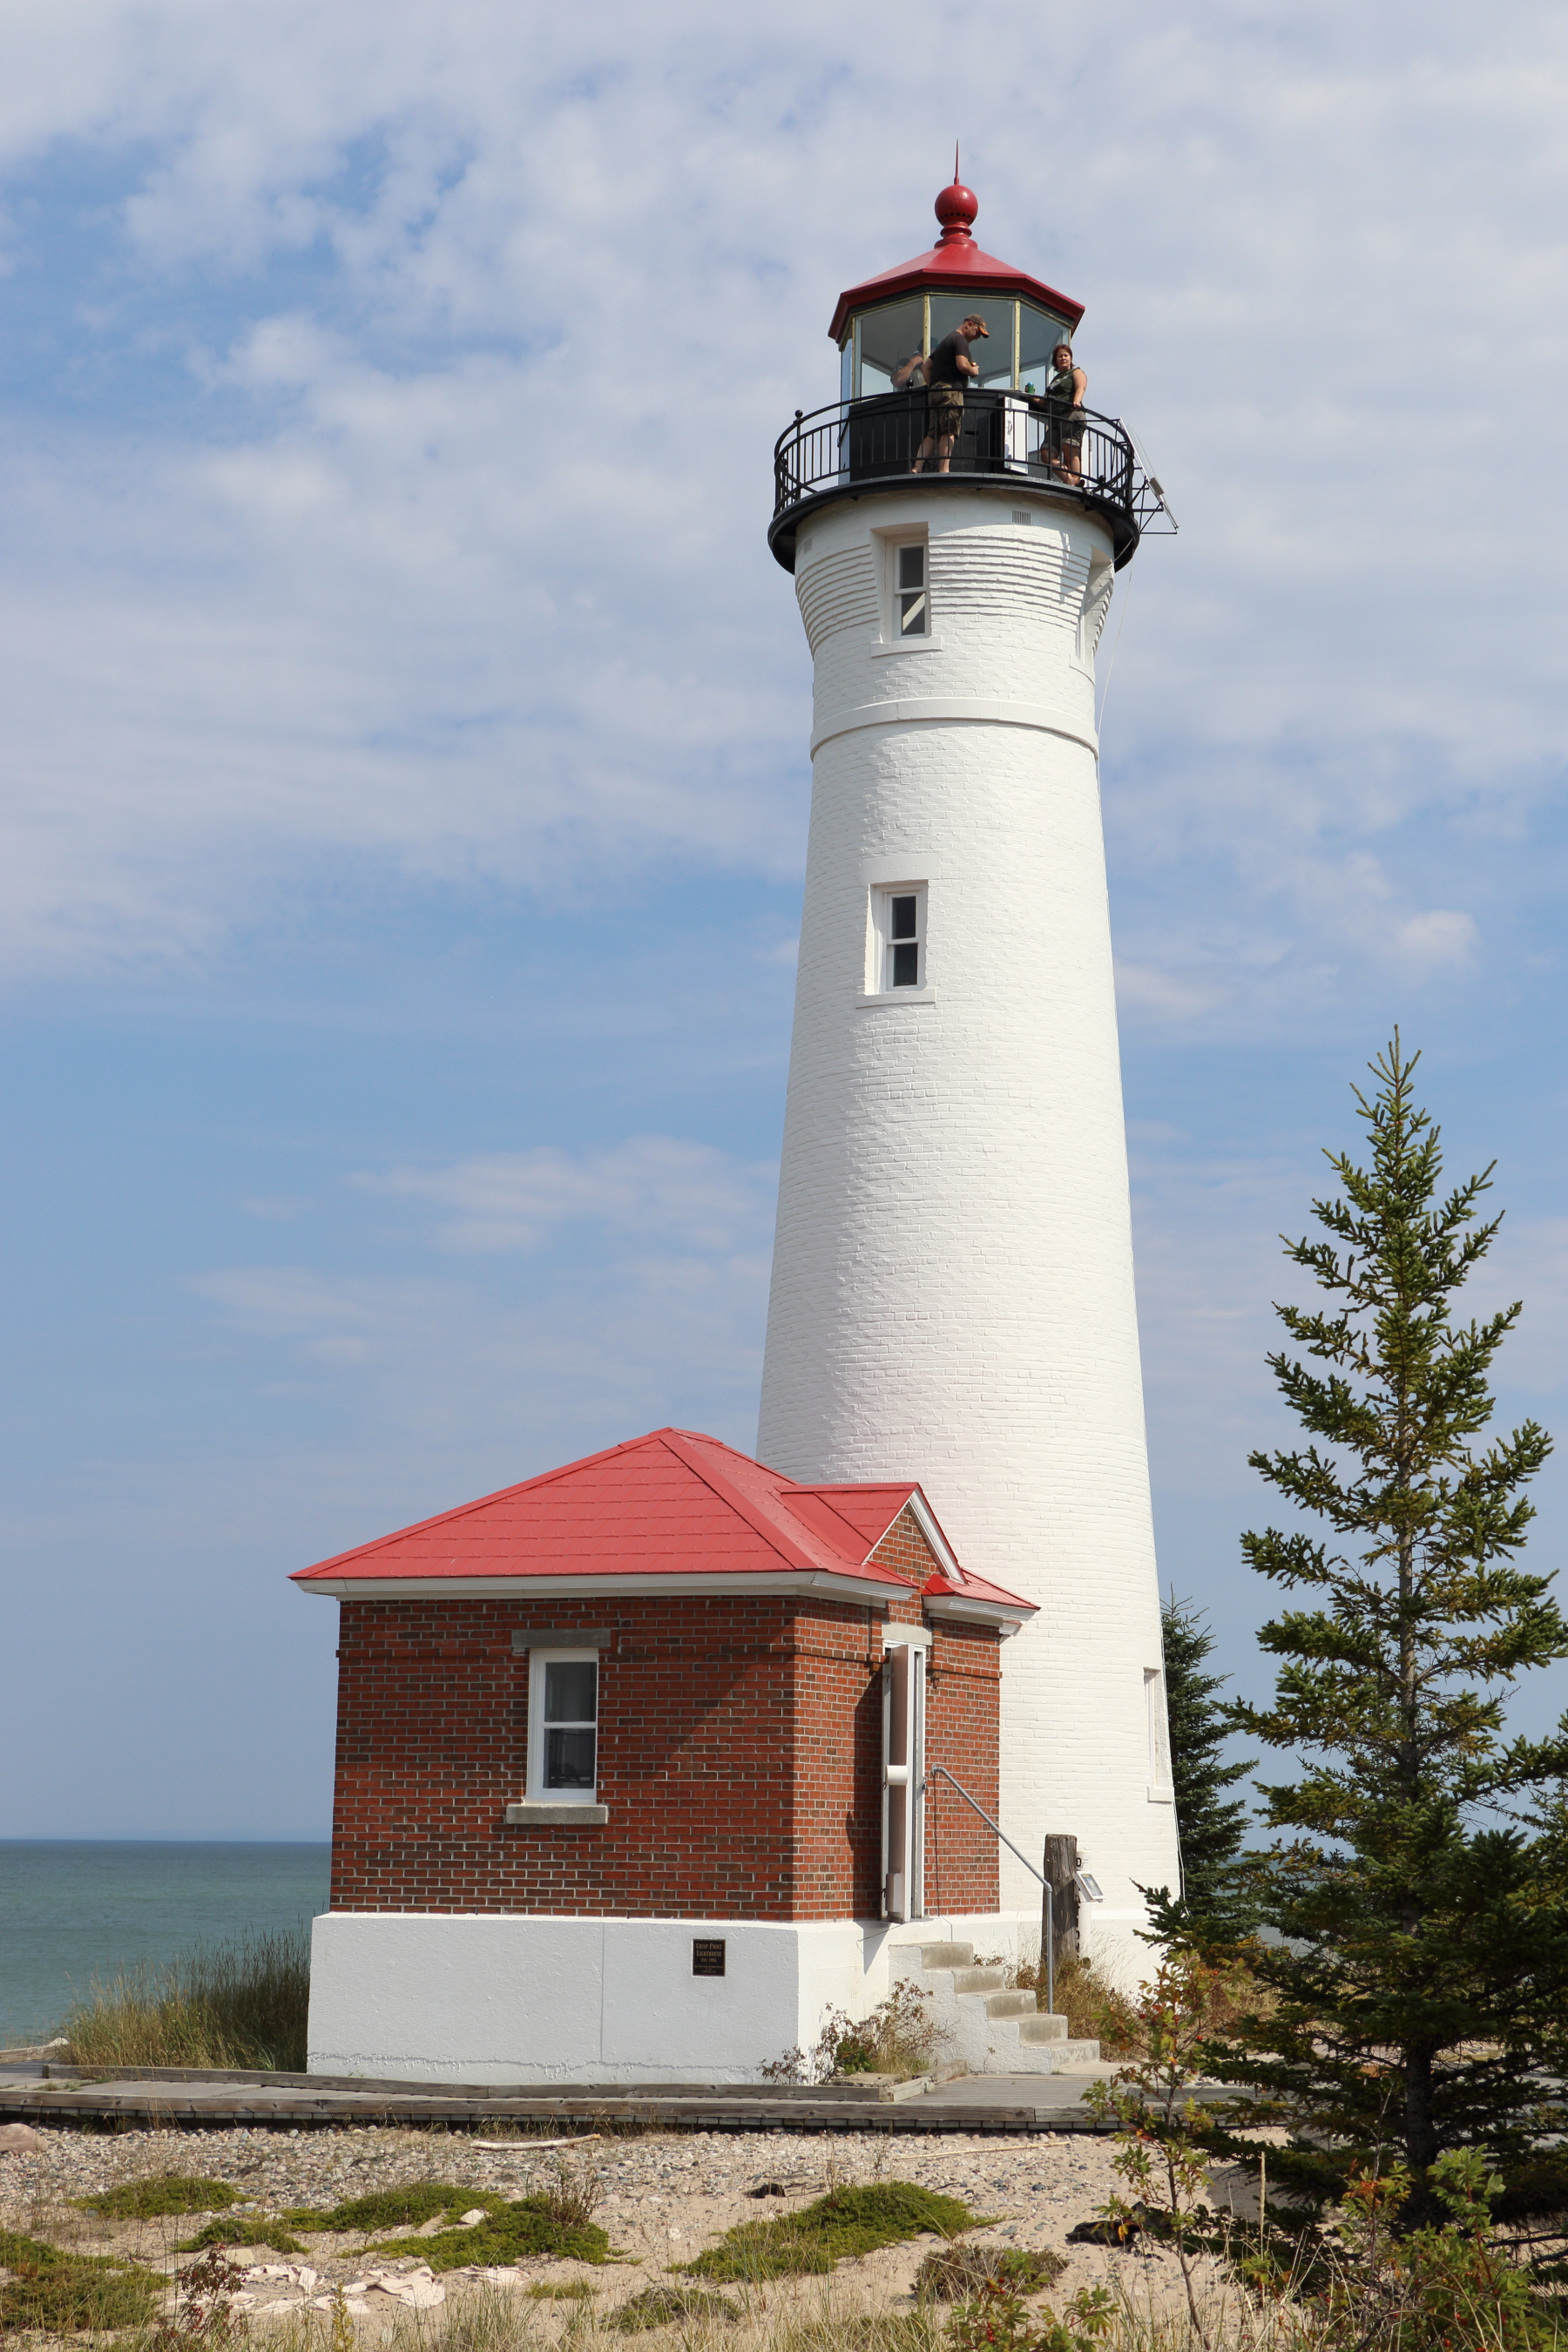 Michigan City Lighthouse and Pier - Yes, the Midwest has lighthouses